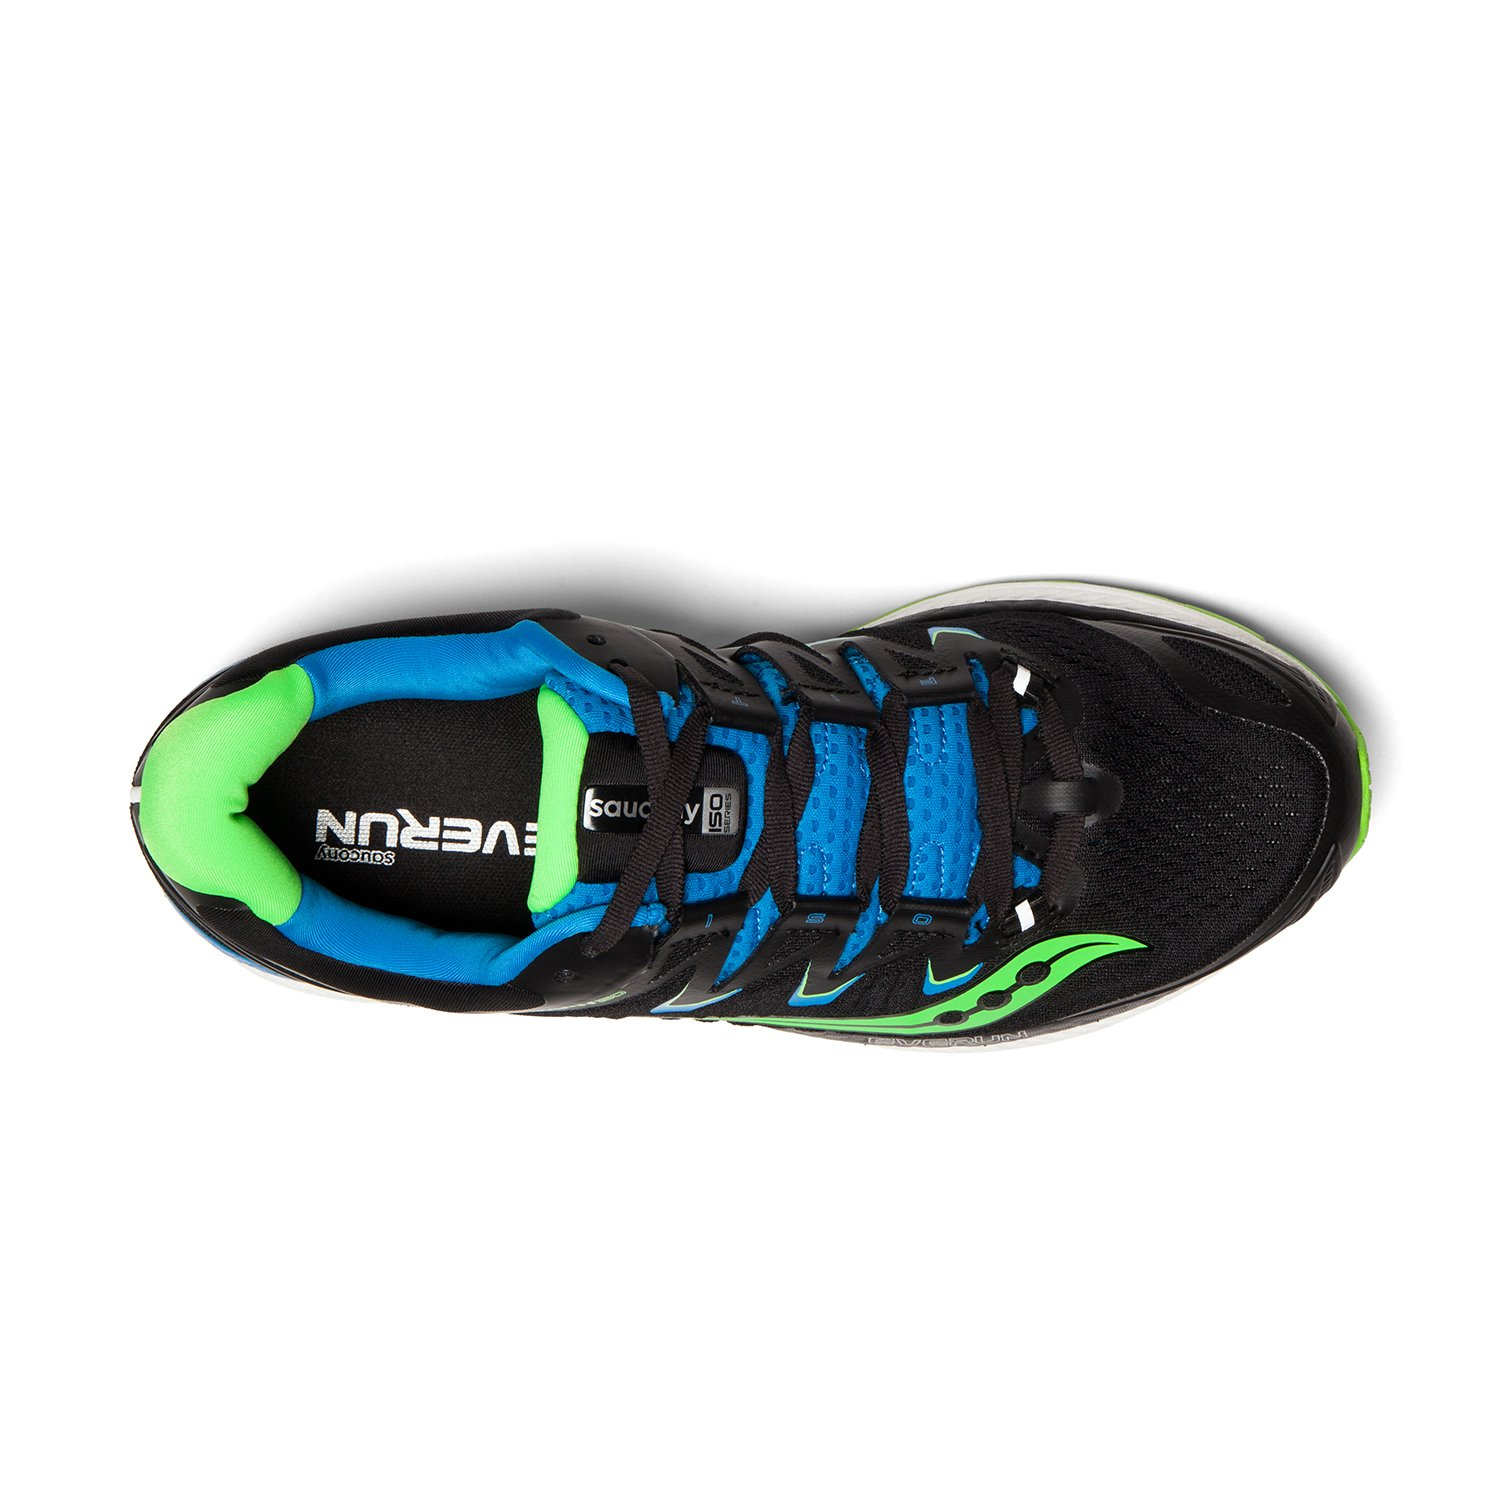 Saucony Men's Triumph Iso 4 Running Shoe B078PMHFG5 10.5 D(M) US|Black/Slime/Blue